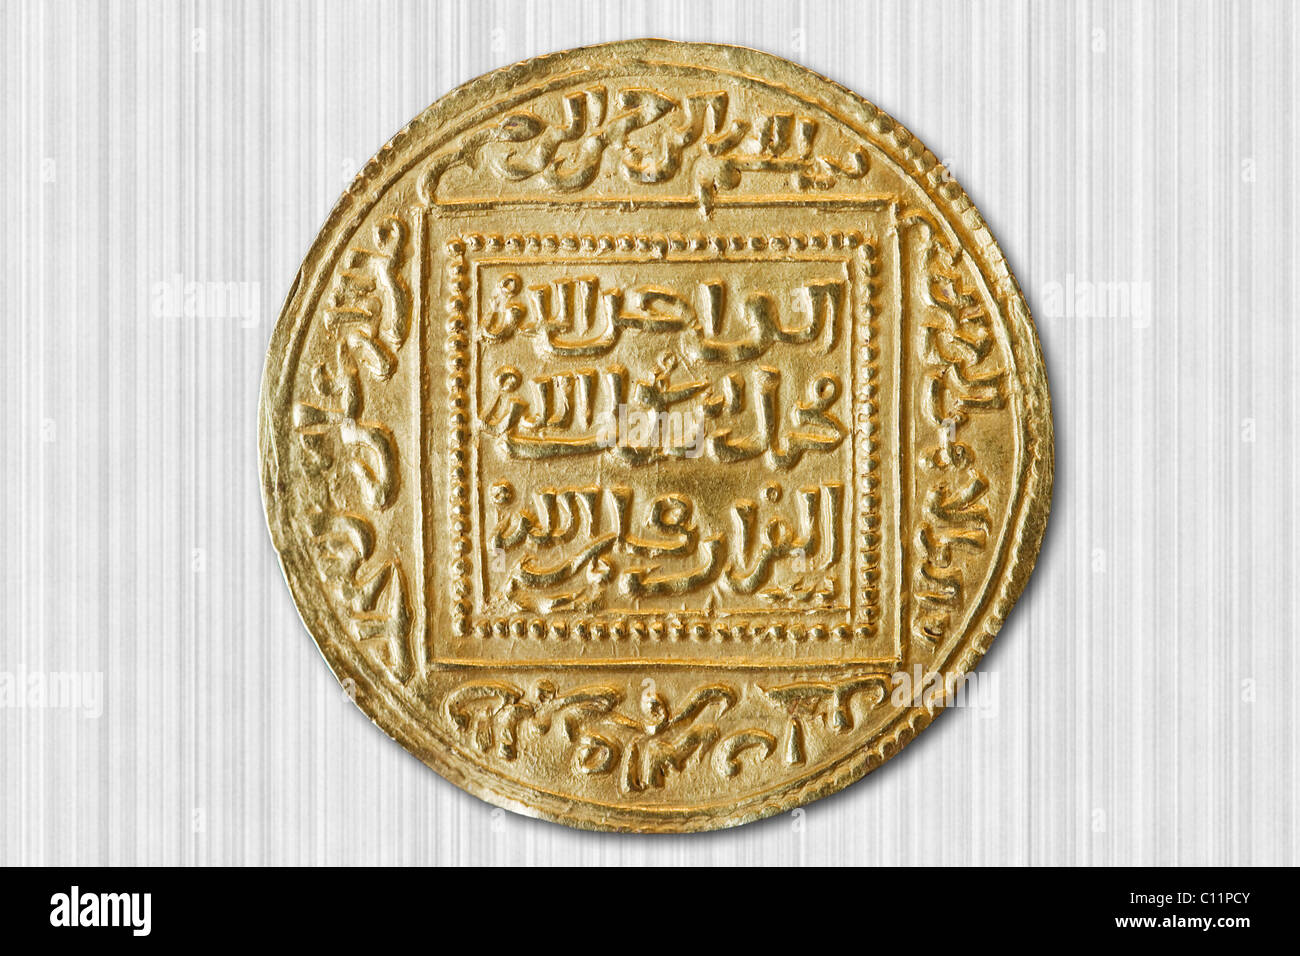 Old dinar coin from the 14th century - Stock Image